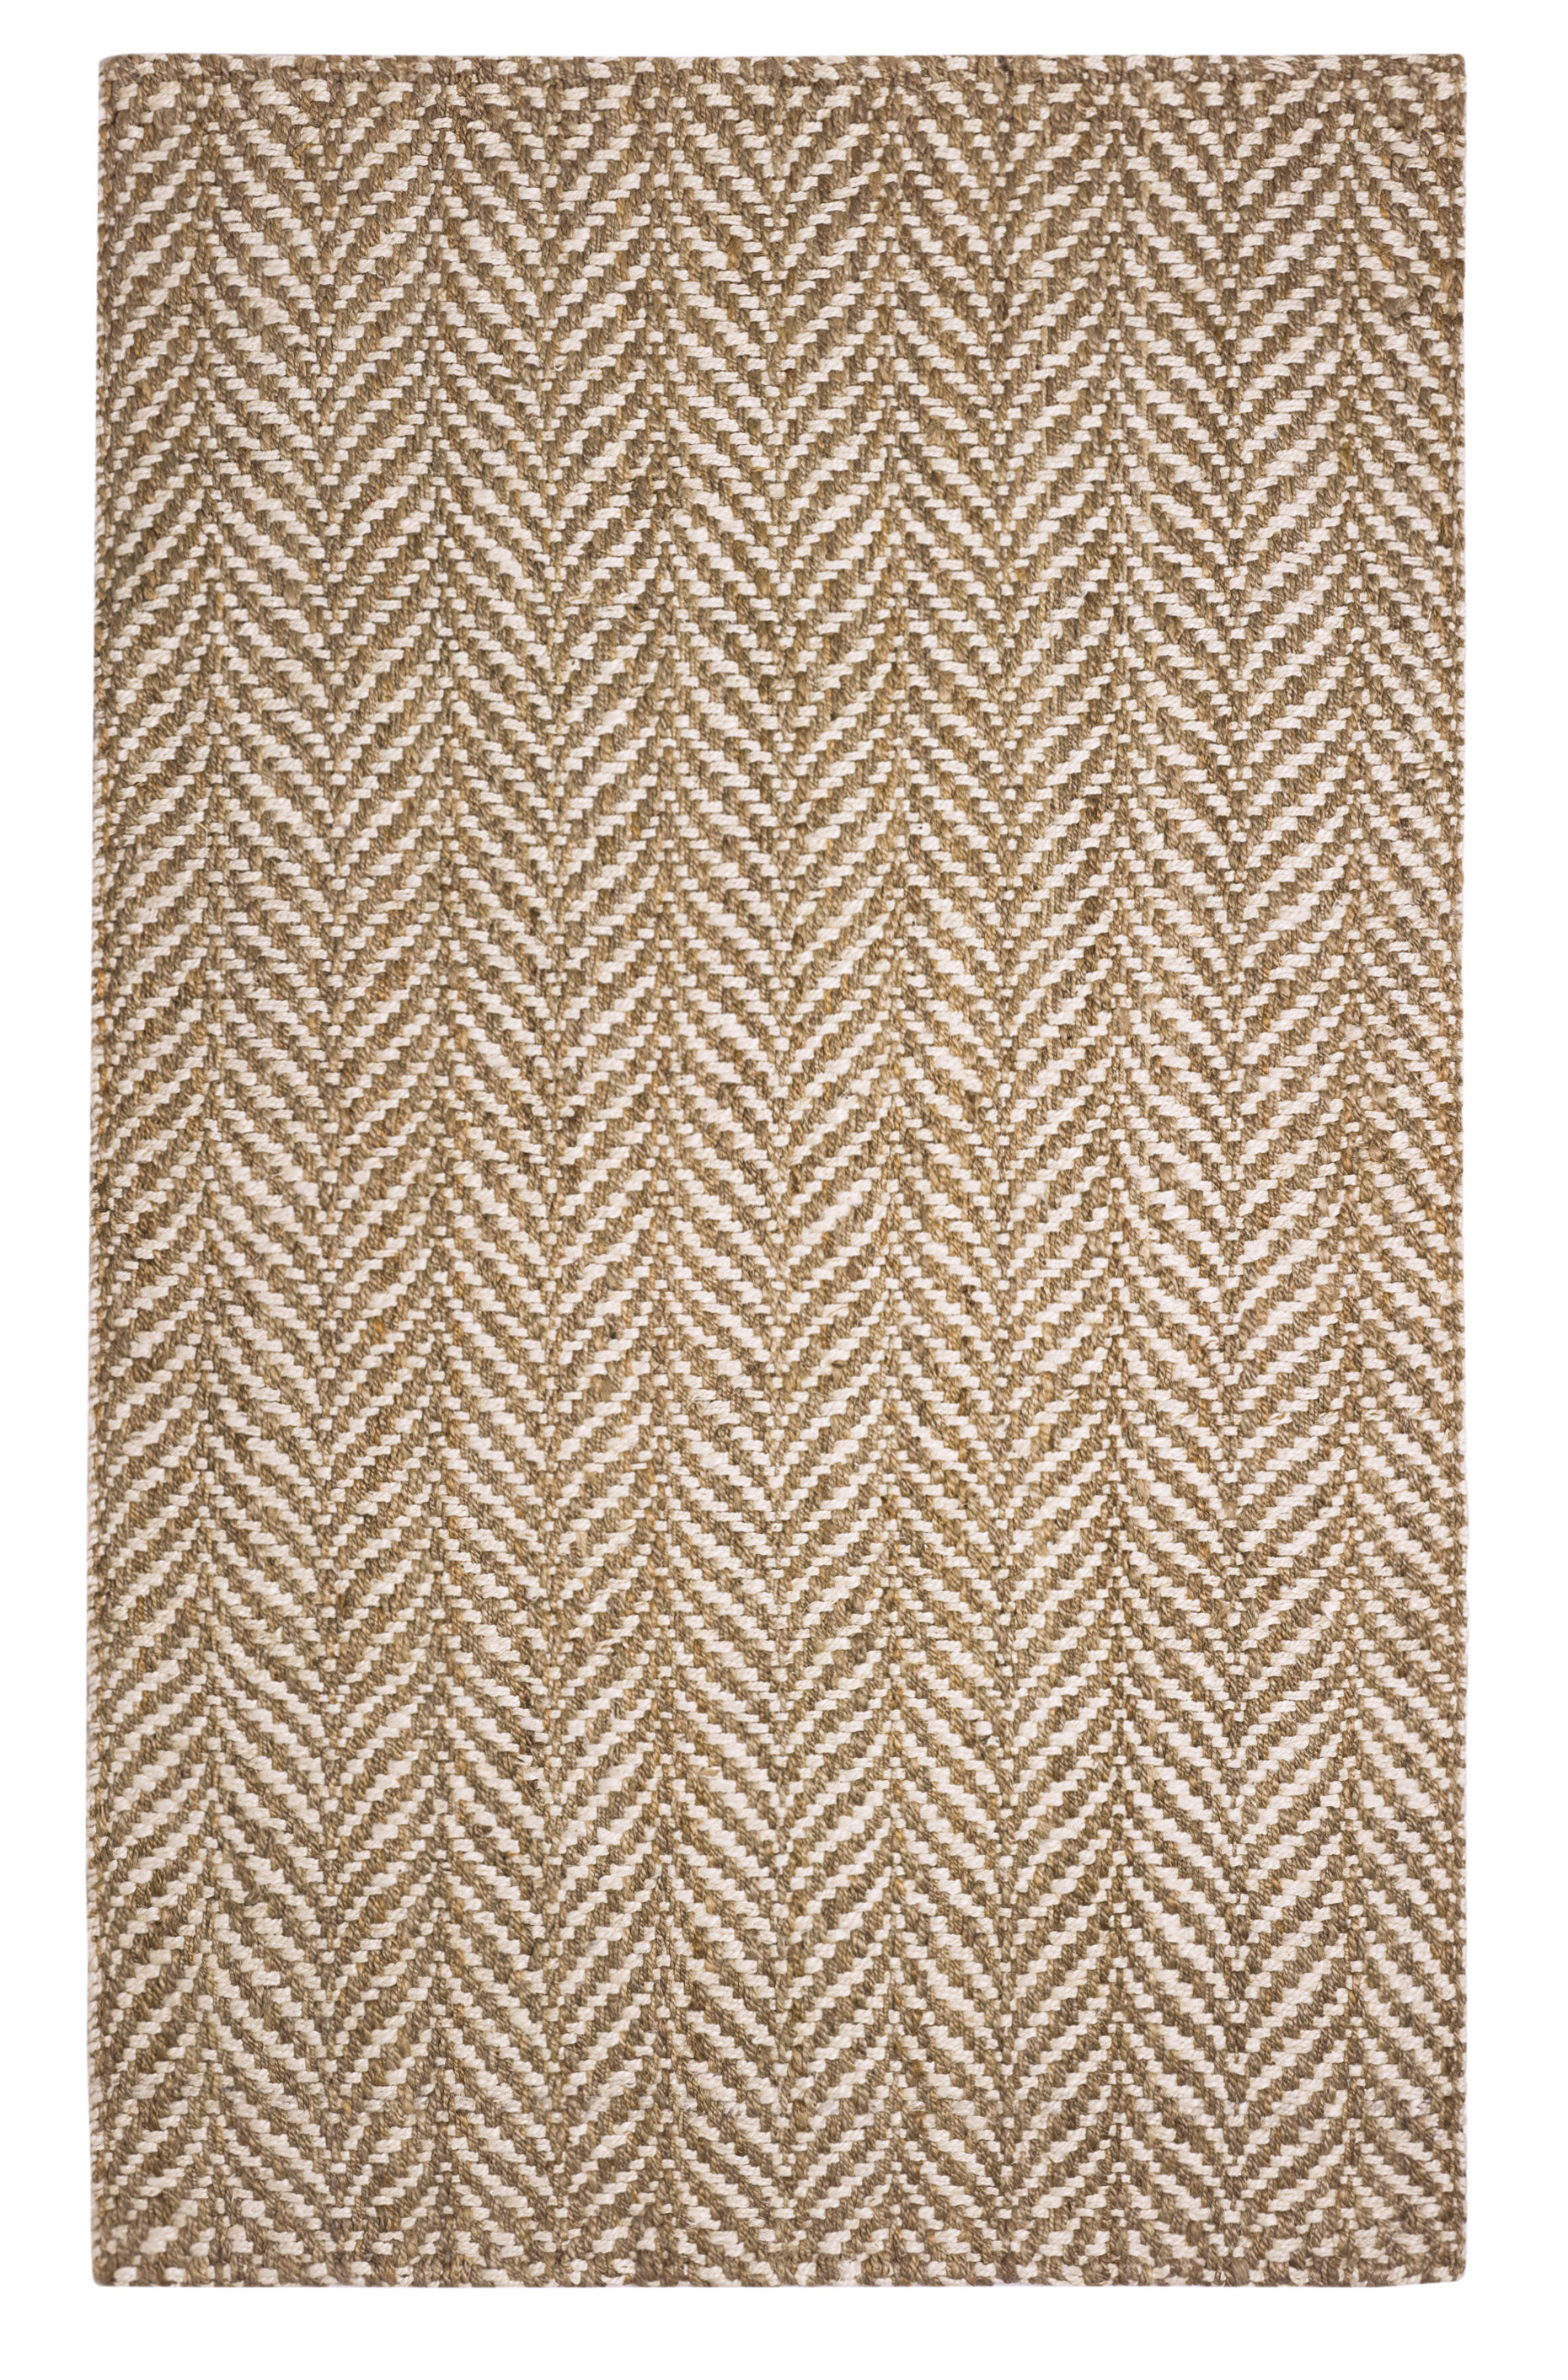 2020 Birch Lane™ Heritage Garrett Handwoven Natural/cream Area Rug Within 4 Piece Handwoven Wheel Wall Decor Sets (View 1 of 20)